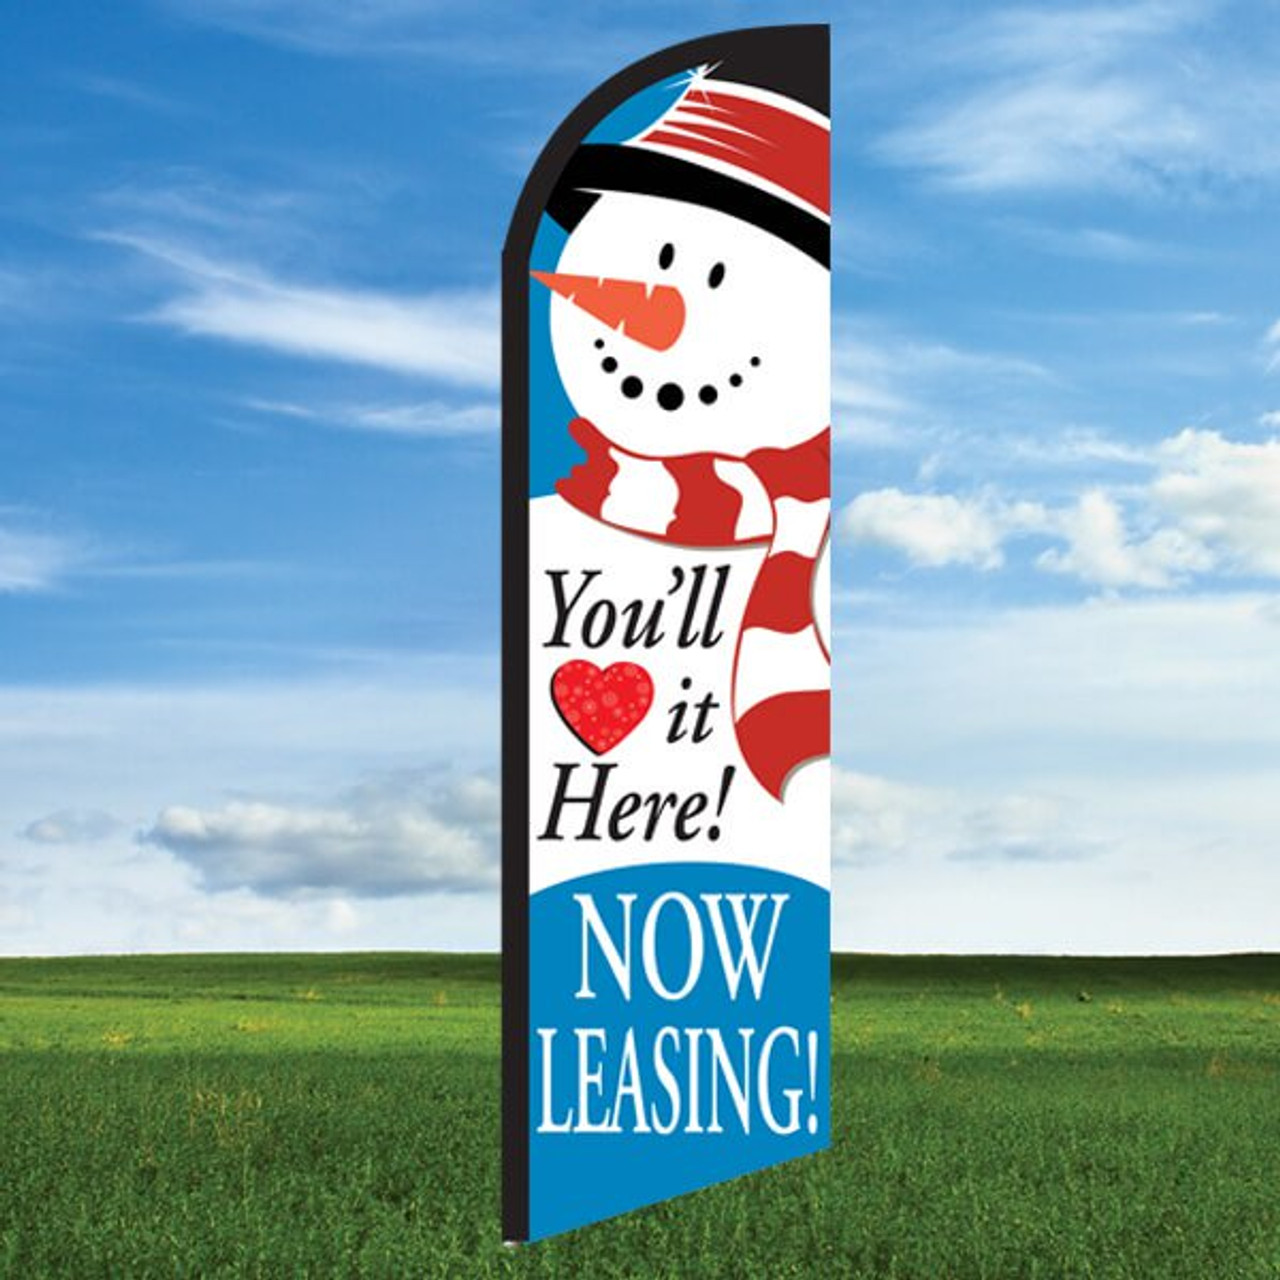 Snowman: You'll Love it Here/Now Leasing- Windleasers 24/7 Widebody Flag